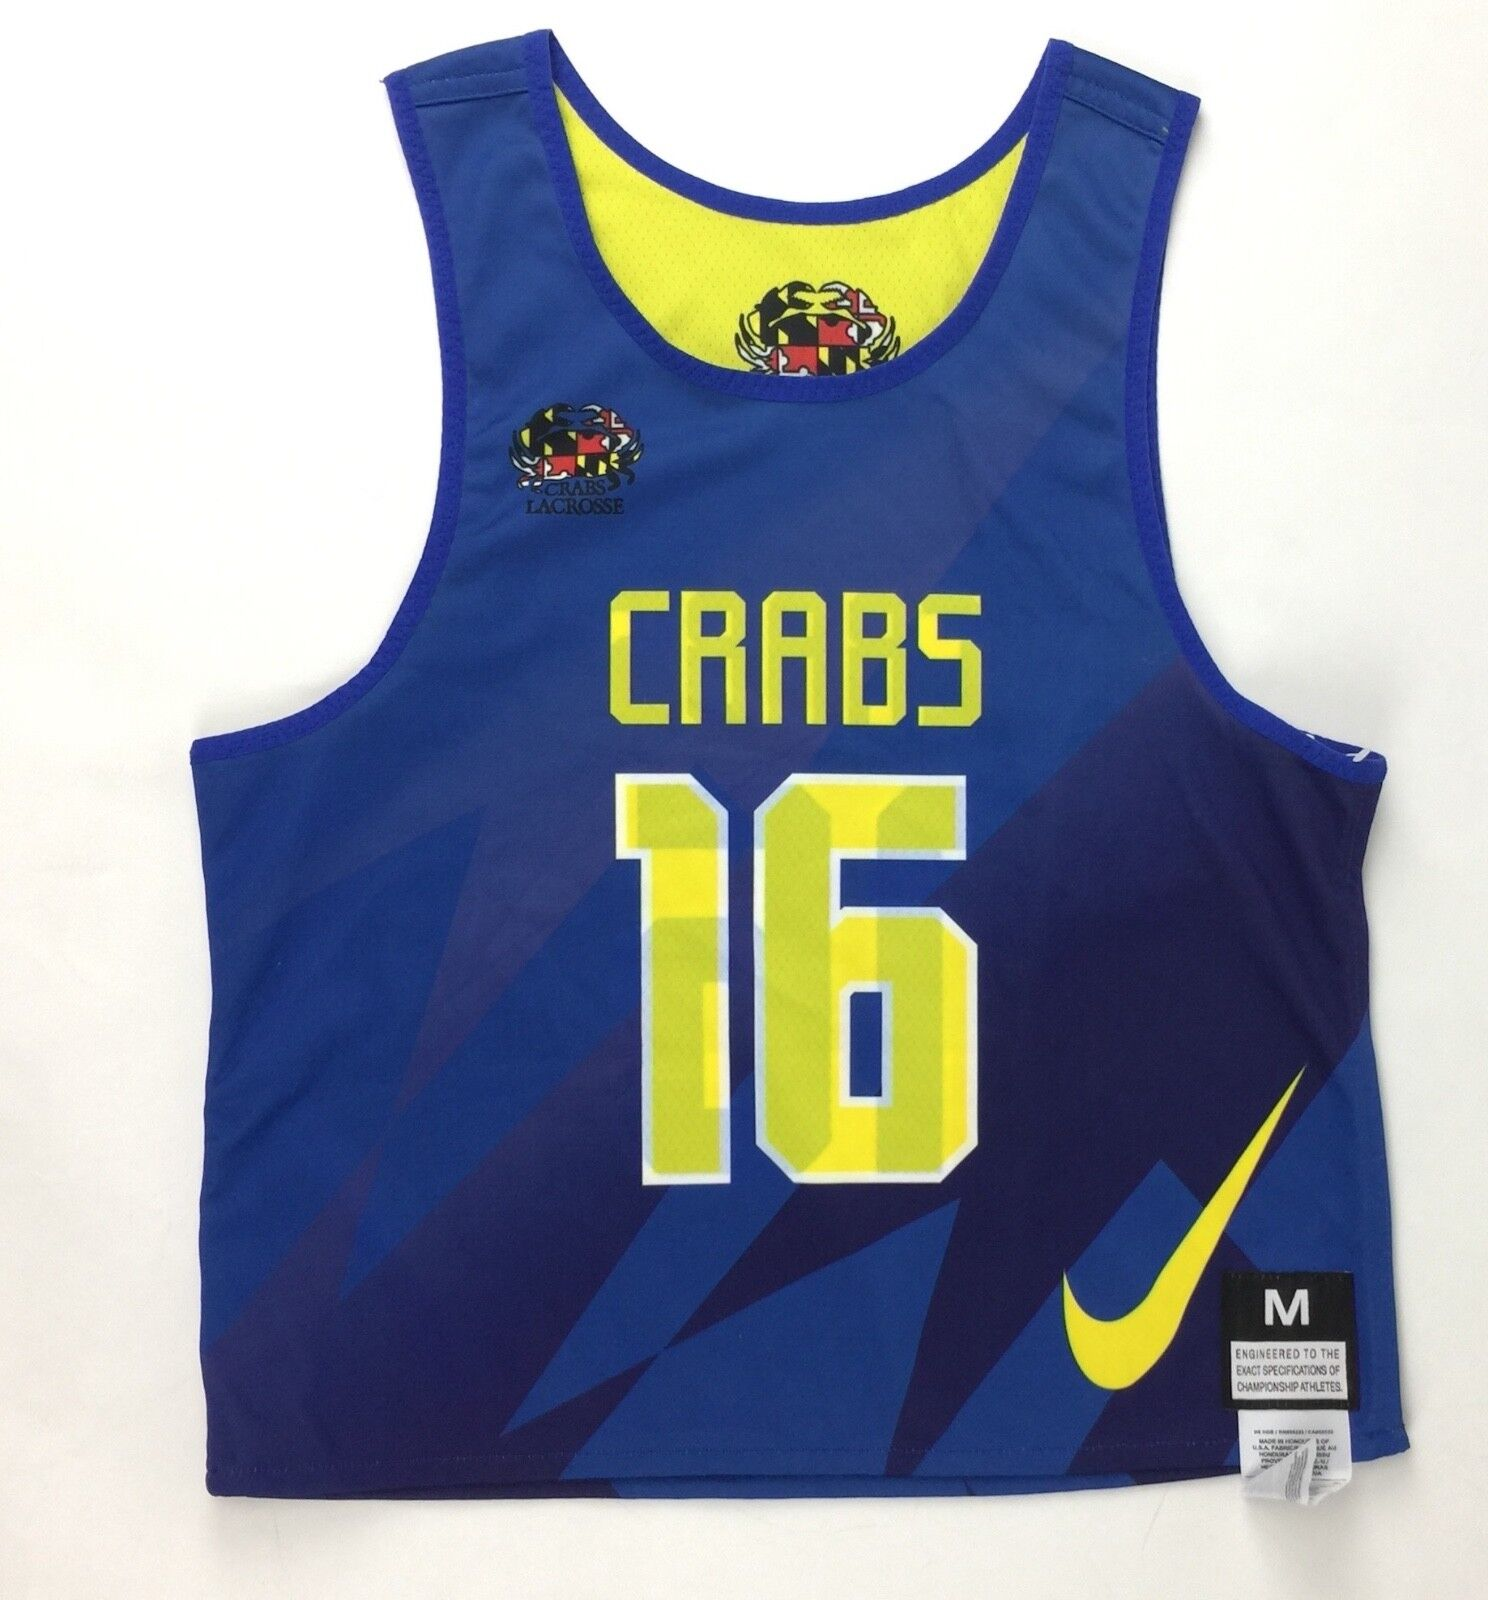 Baltimore Crabs Lacrosse Club Nike Jersey Boys Med 2017